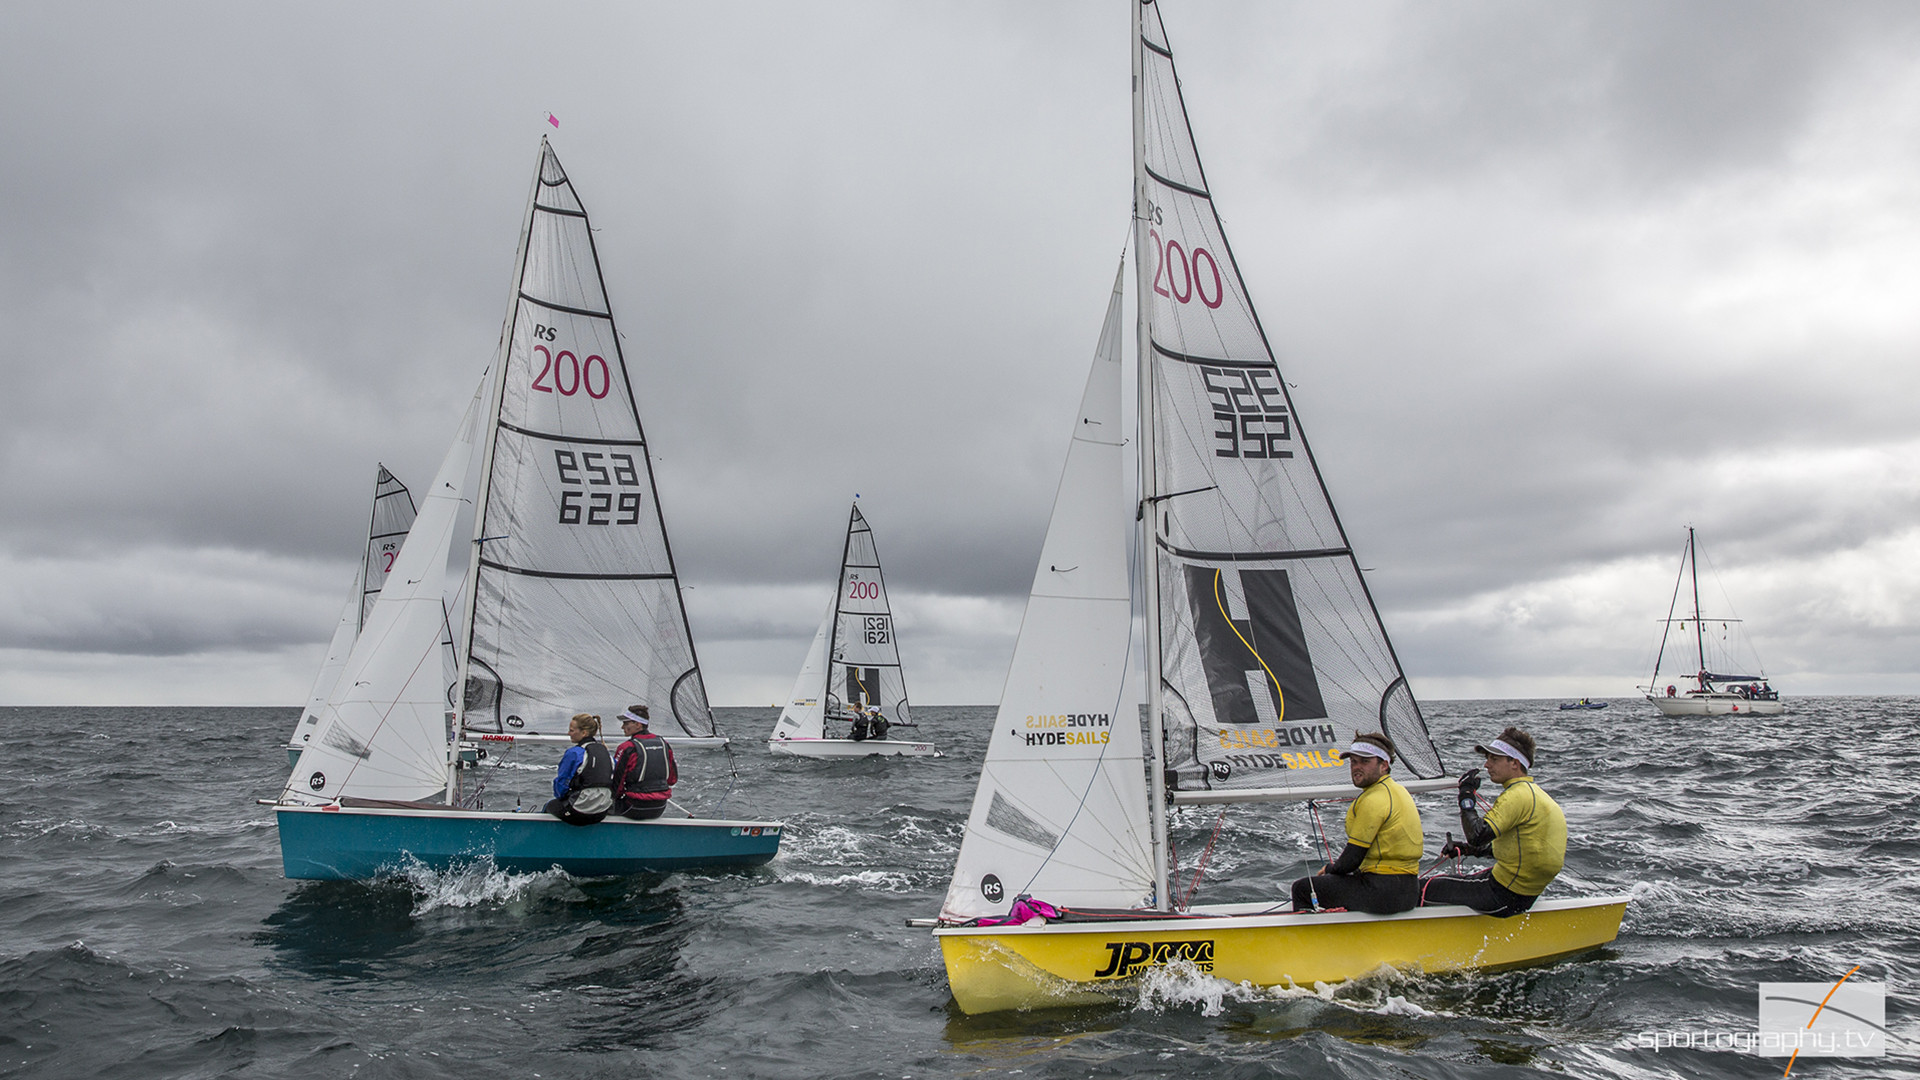 RS200 National Champions, a fabulous championship with close racing throughout the 100 boat fleet.